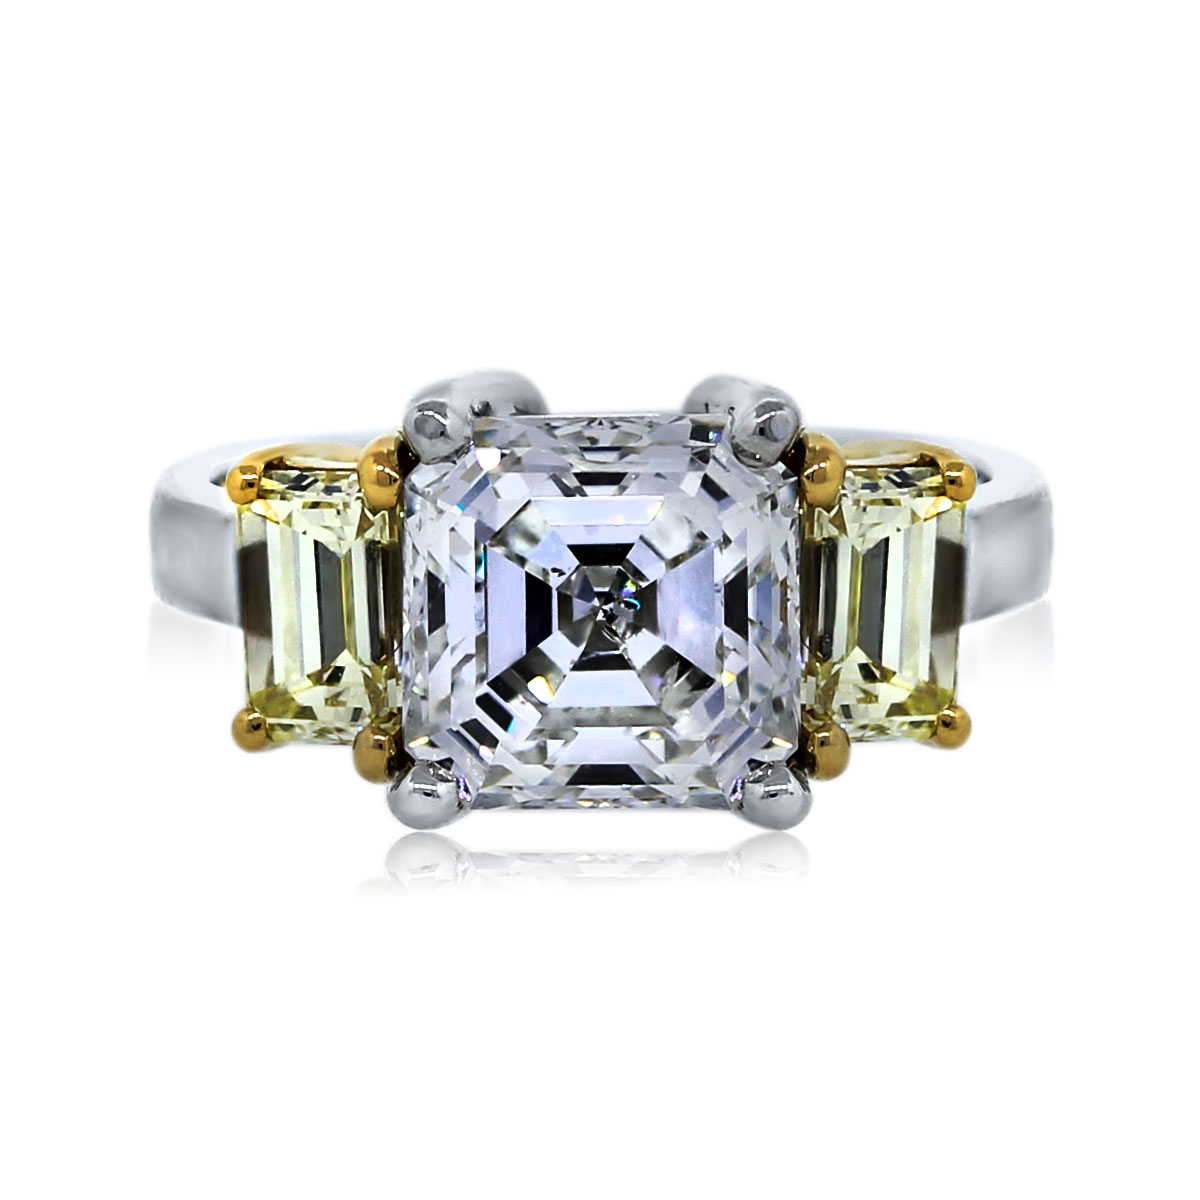 You are Viewing this Stunning Asscher Cut Diamond Engagement Ring